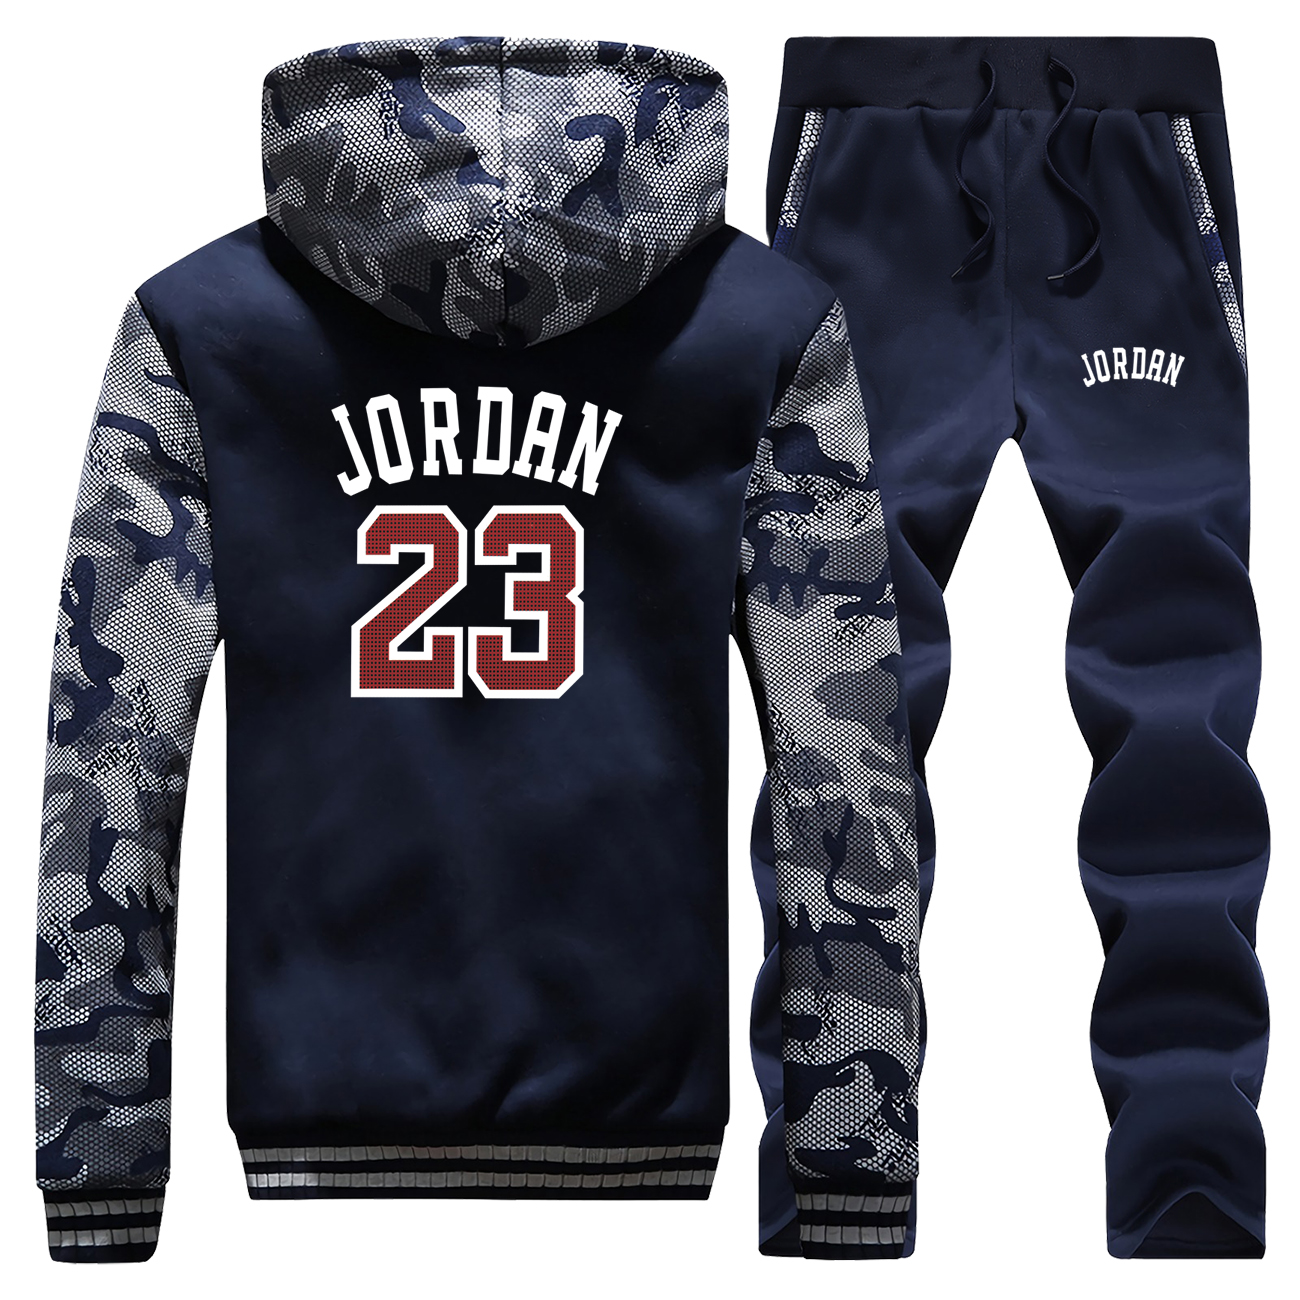 Mens Jacket+Pants 2 Piece Sets Jordan 23 Printed Hoodies Men Warm Suit Zip Coats Autumn Winter Tracksuit Camouflage Male Hoodie